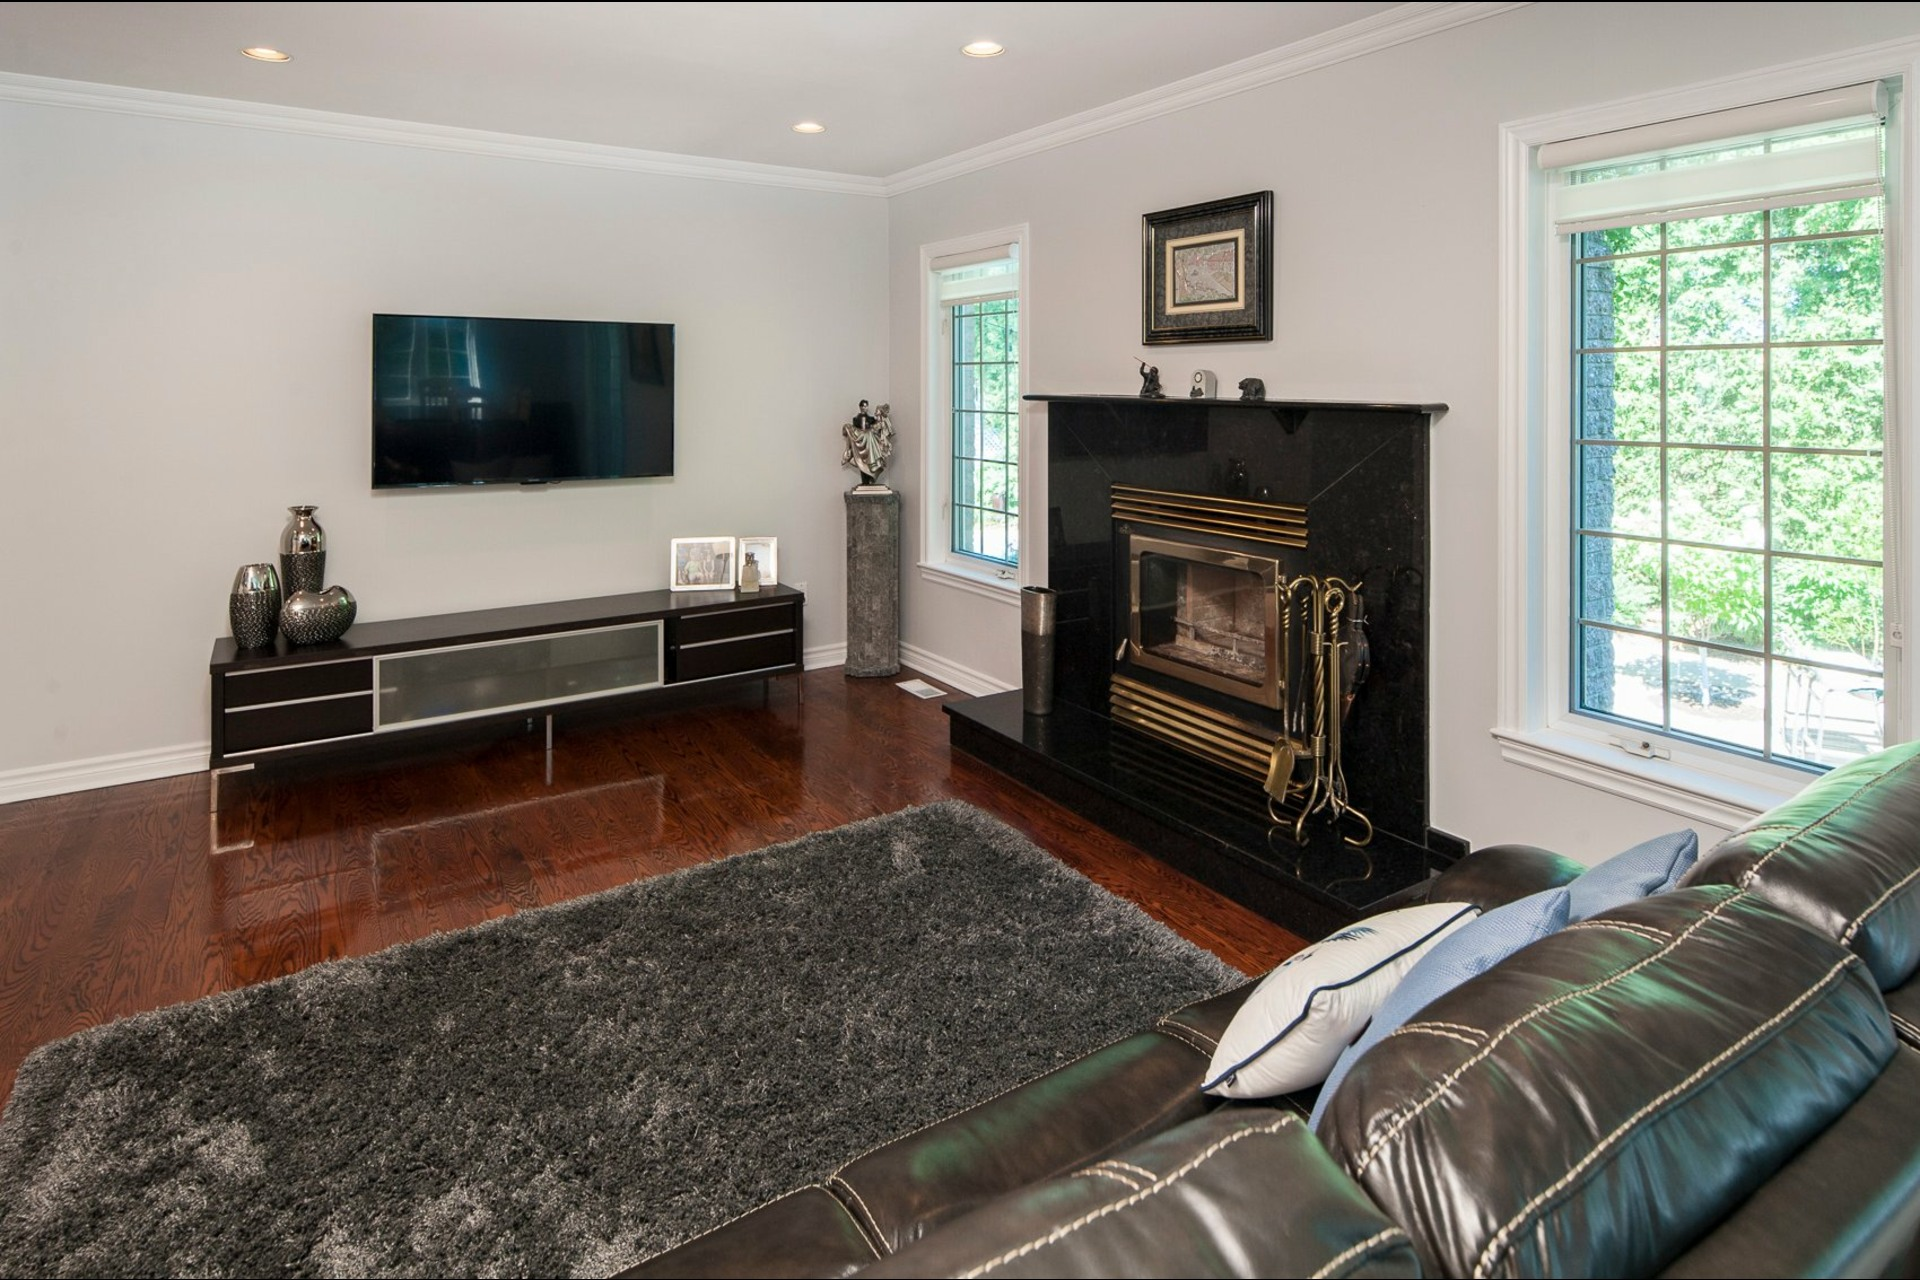 image 13 - House For sale Beaconsfield